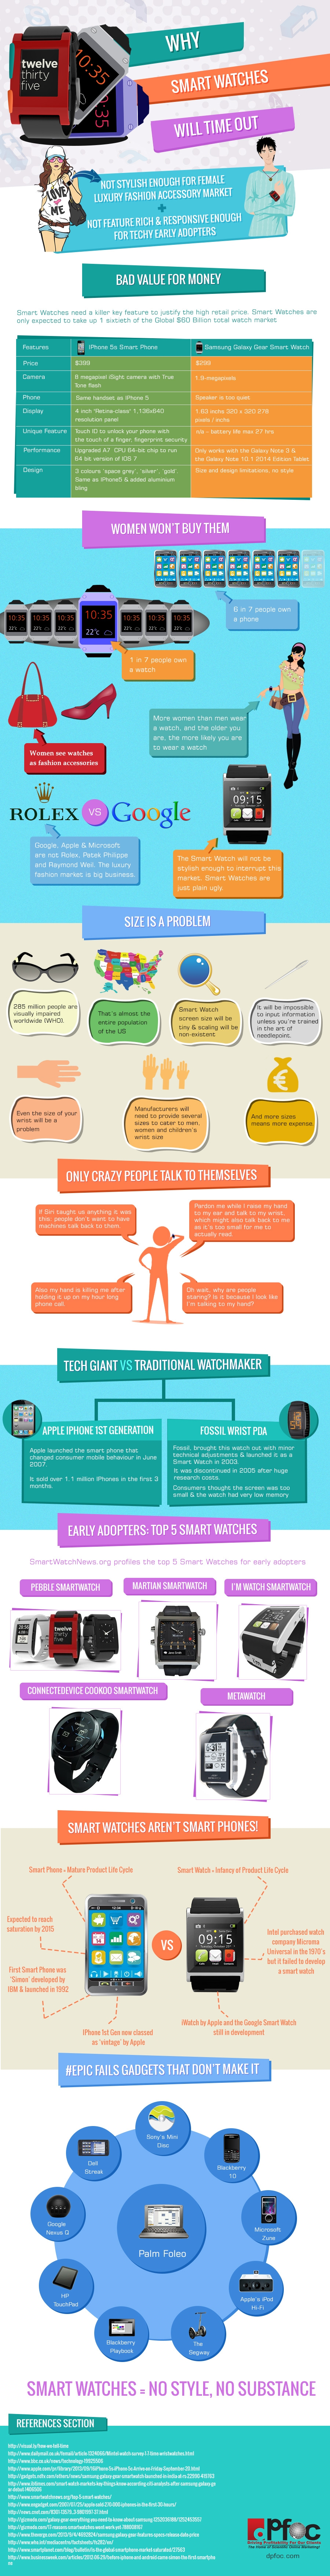 Why Smart Watches Will Time Out